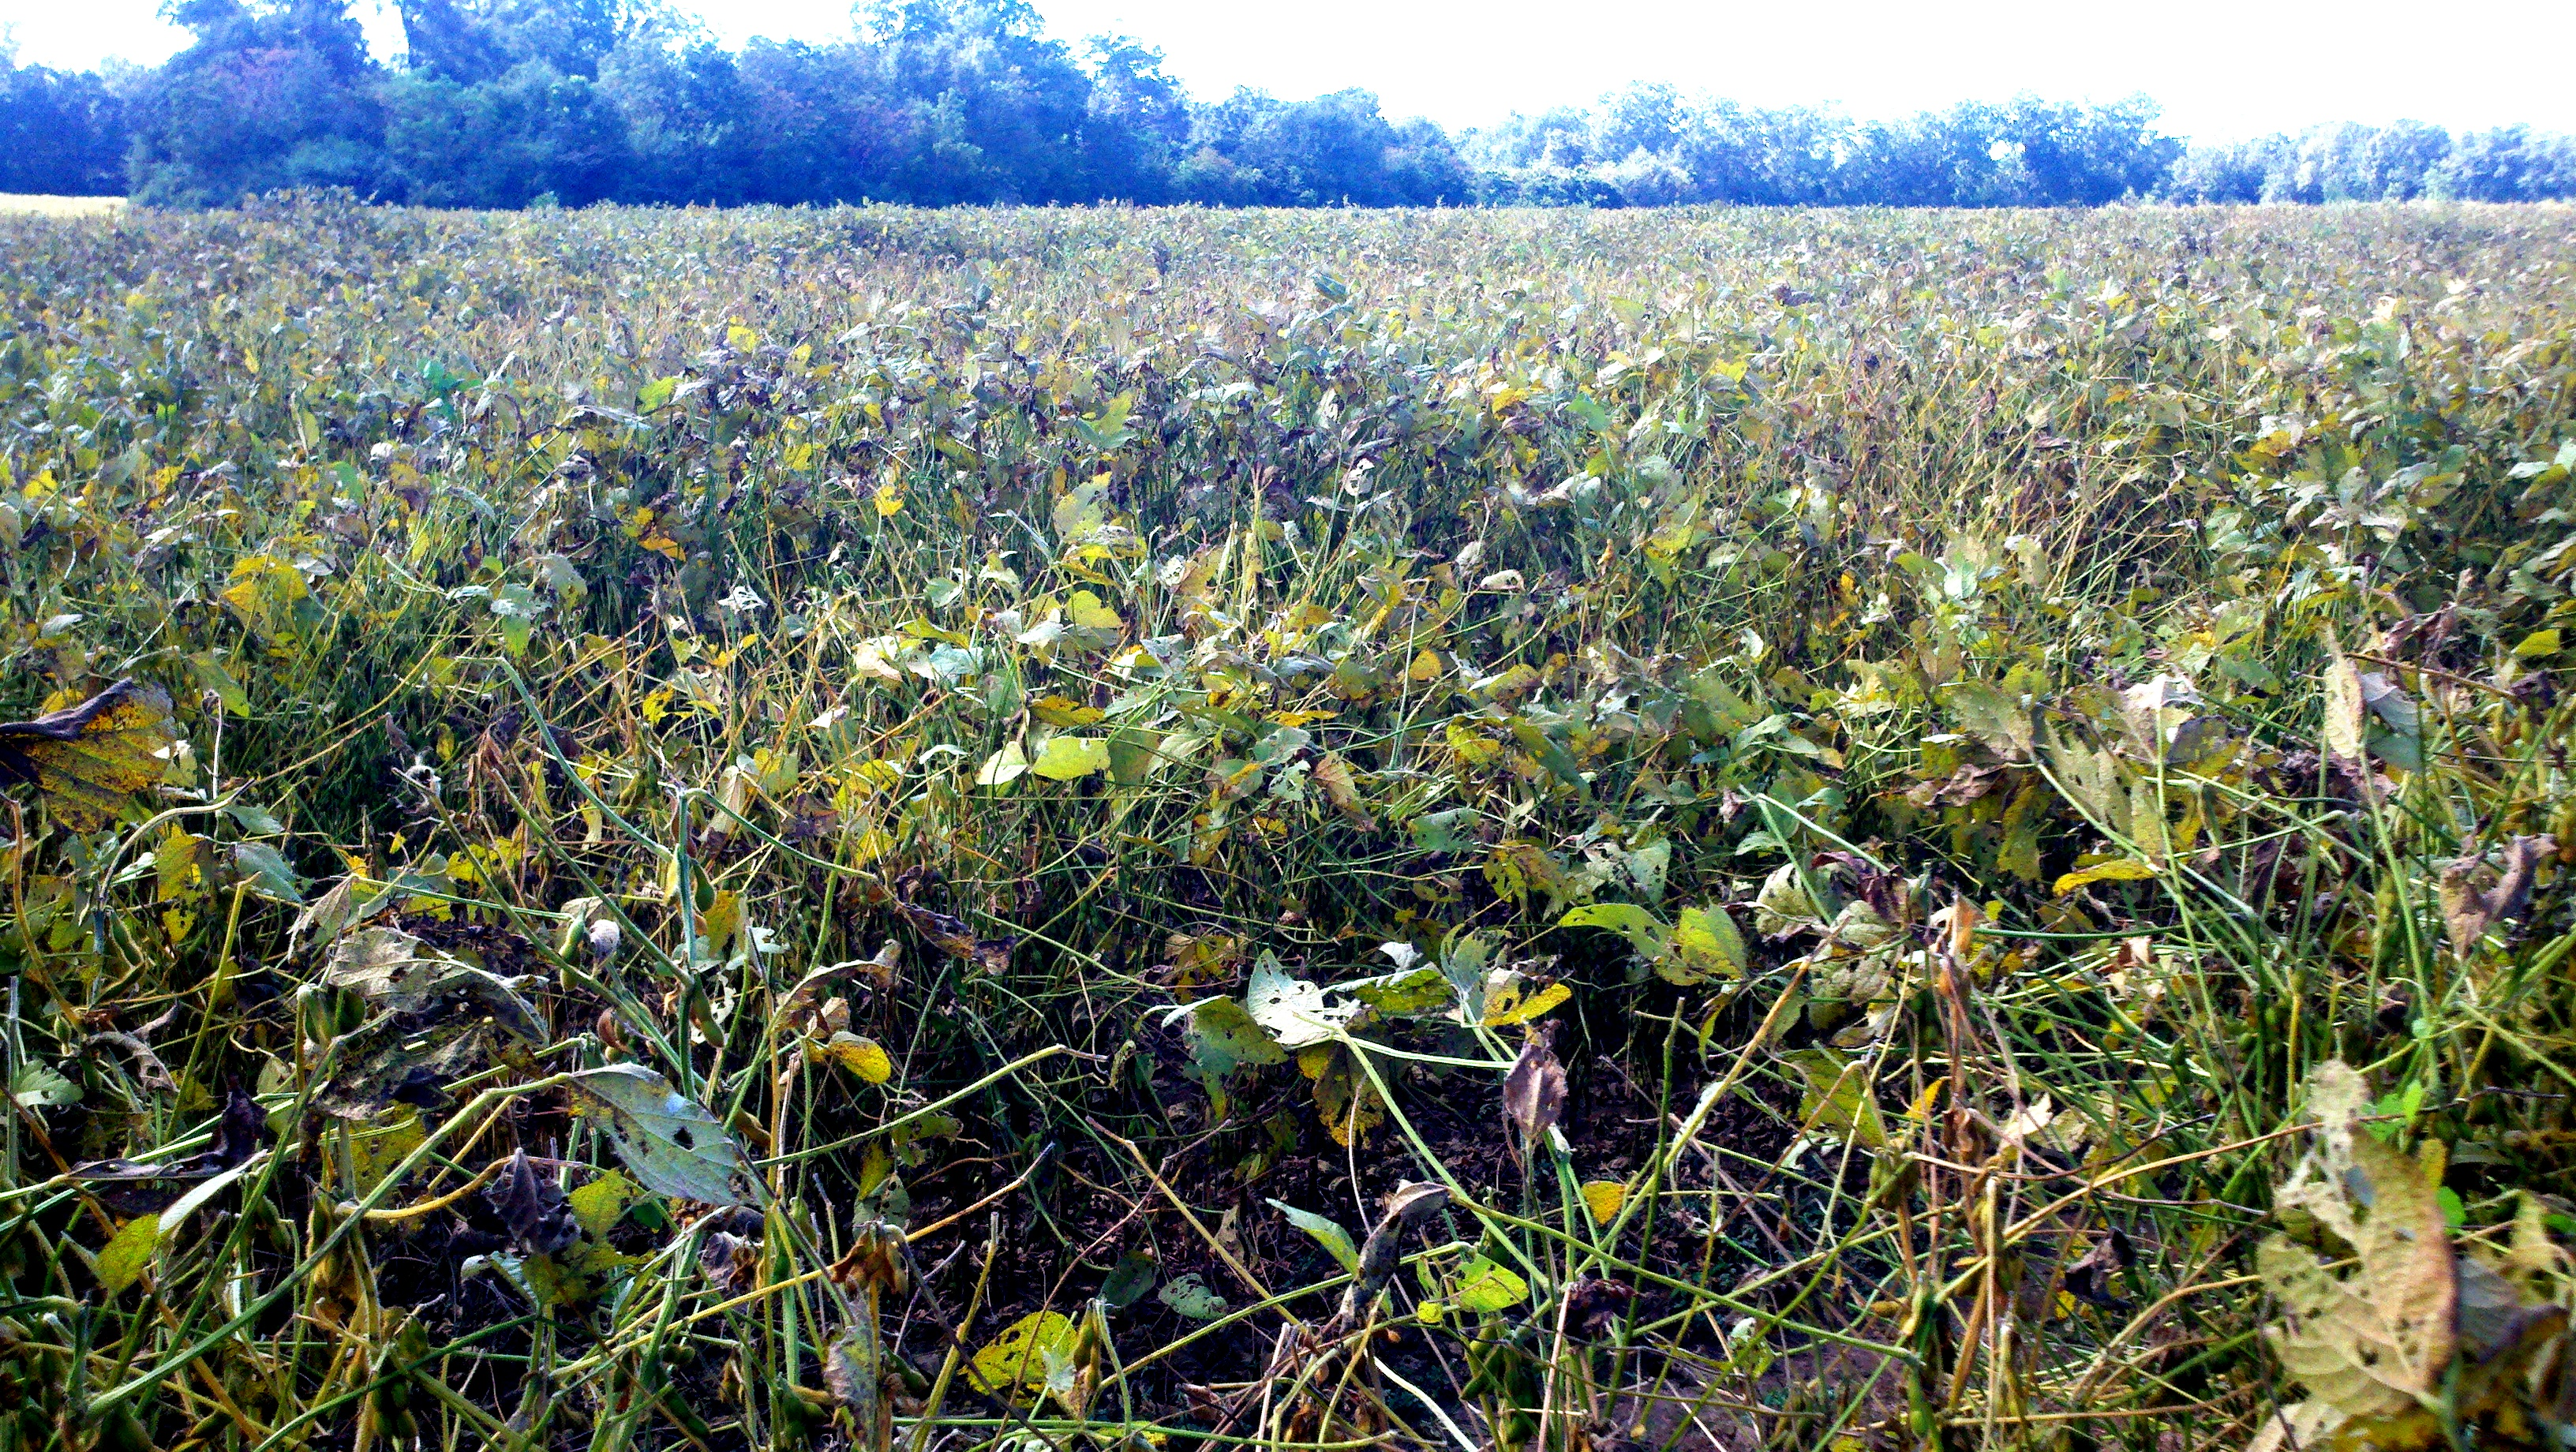 Field devastated by Asian Soybean Rust in 2012